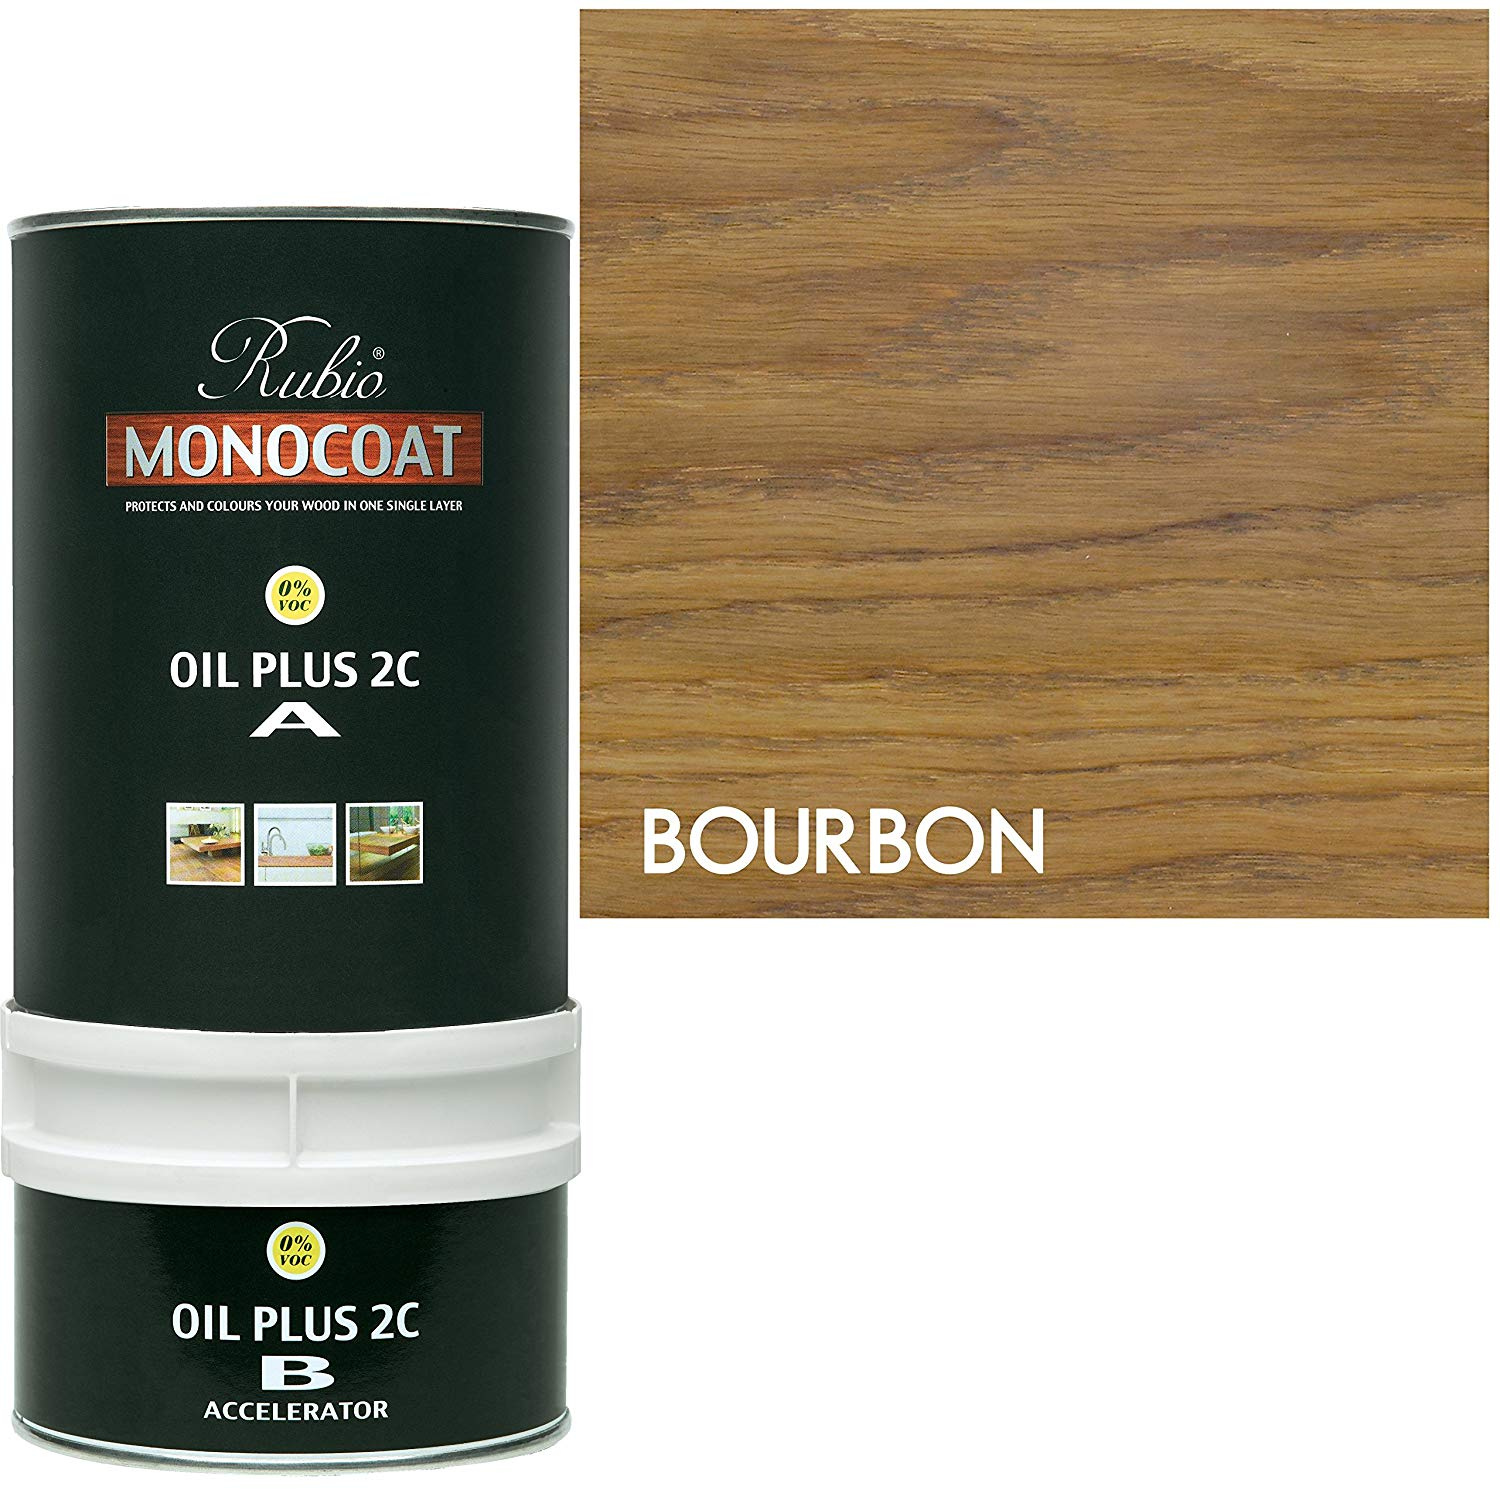 Rubio Monocoat Oil Plus 2C - Bourbon